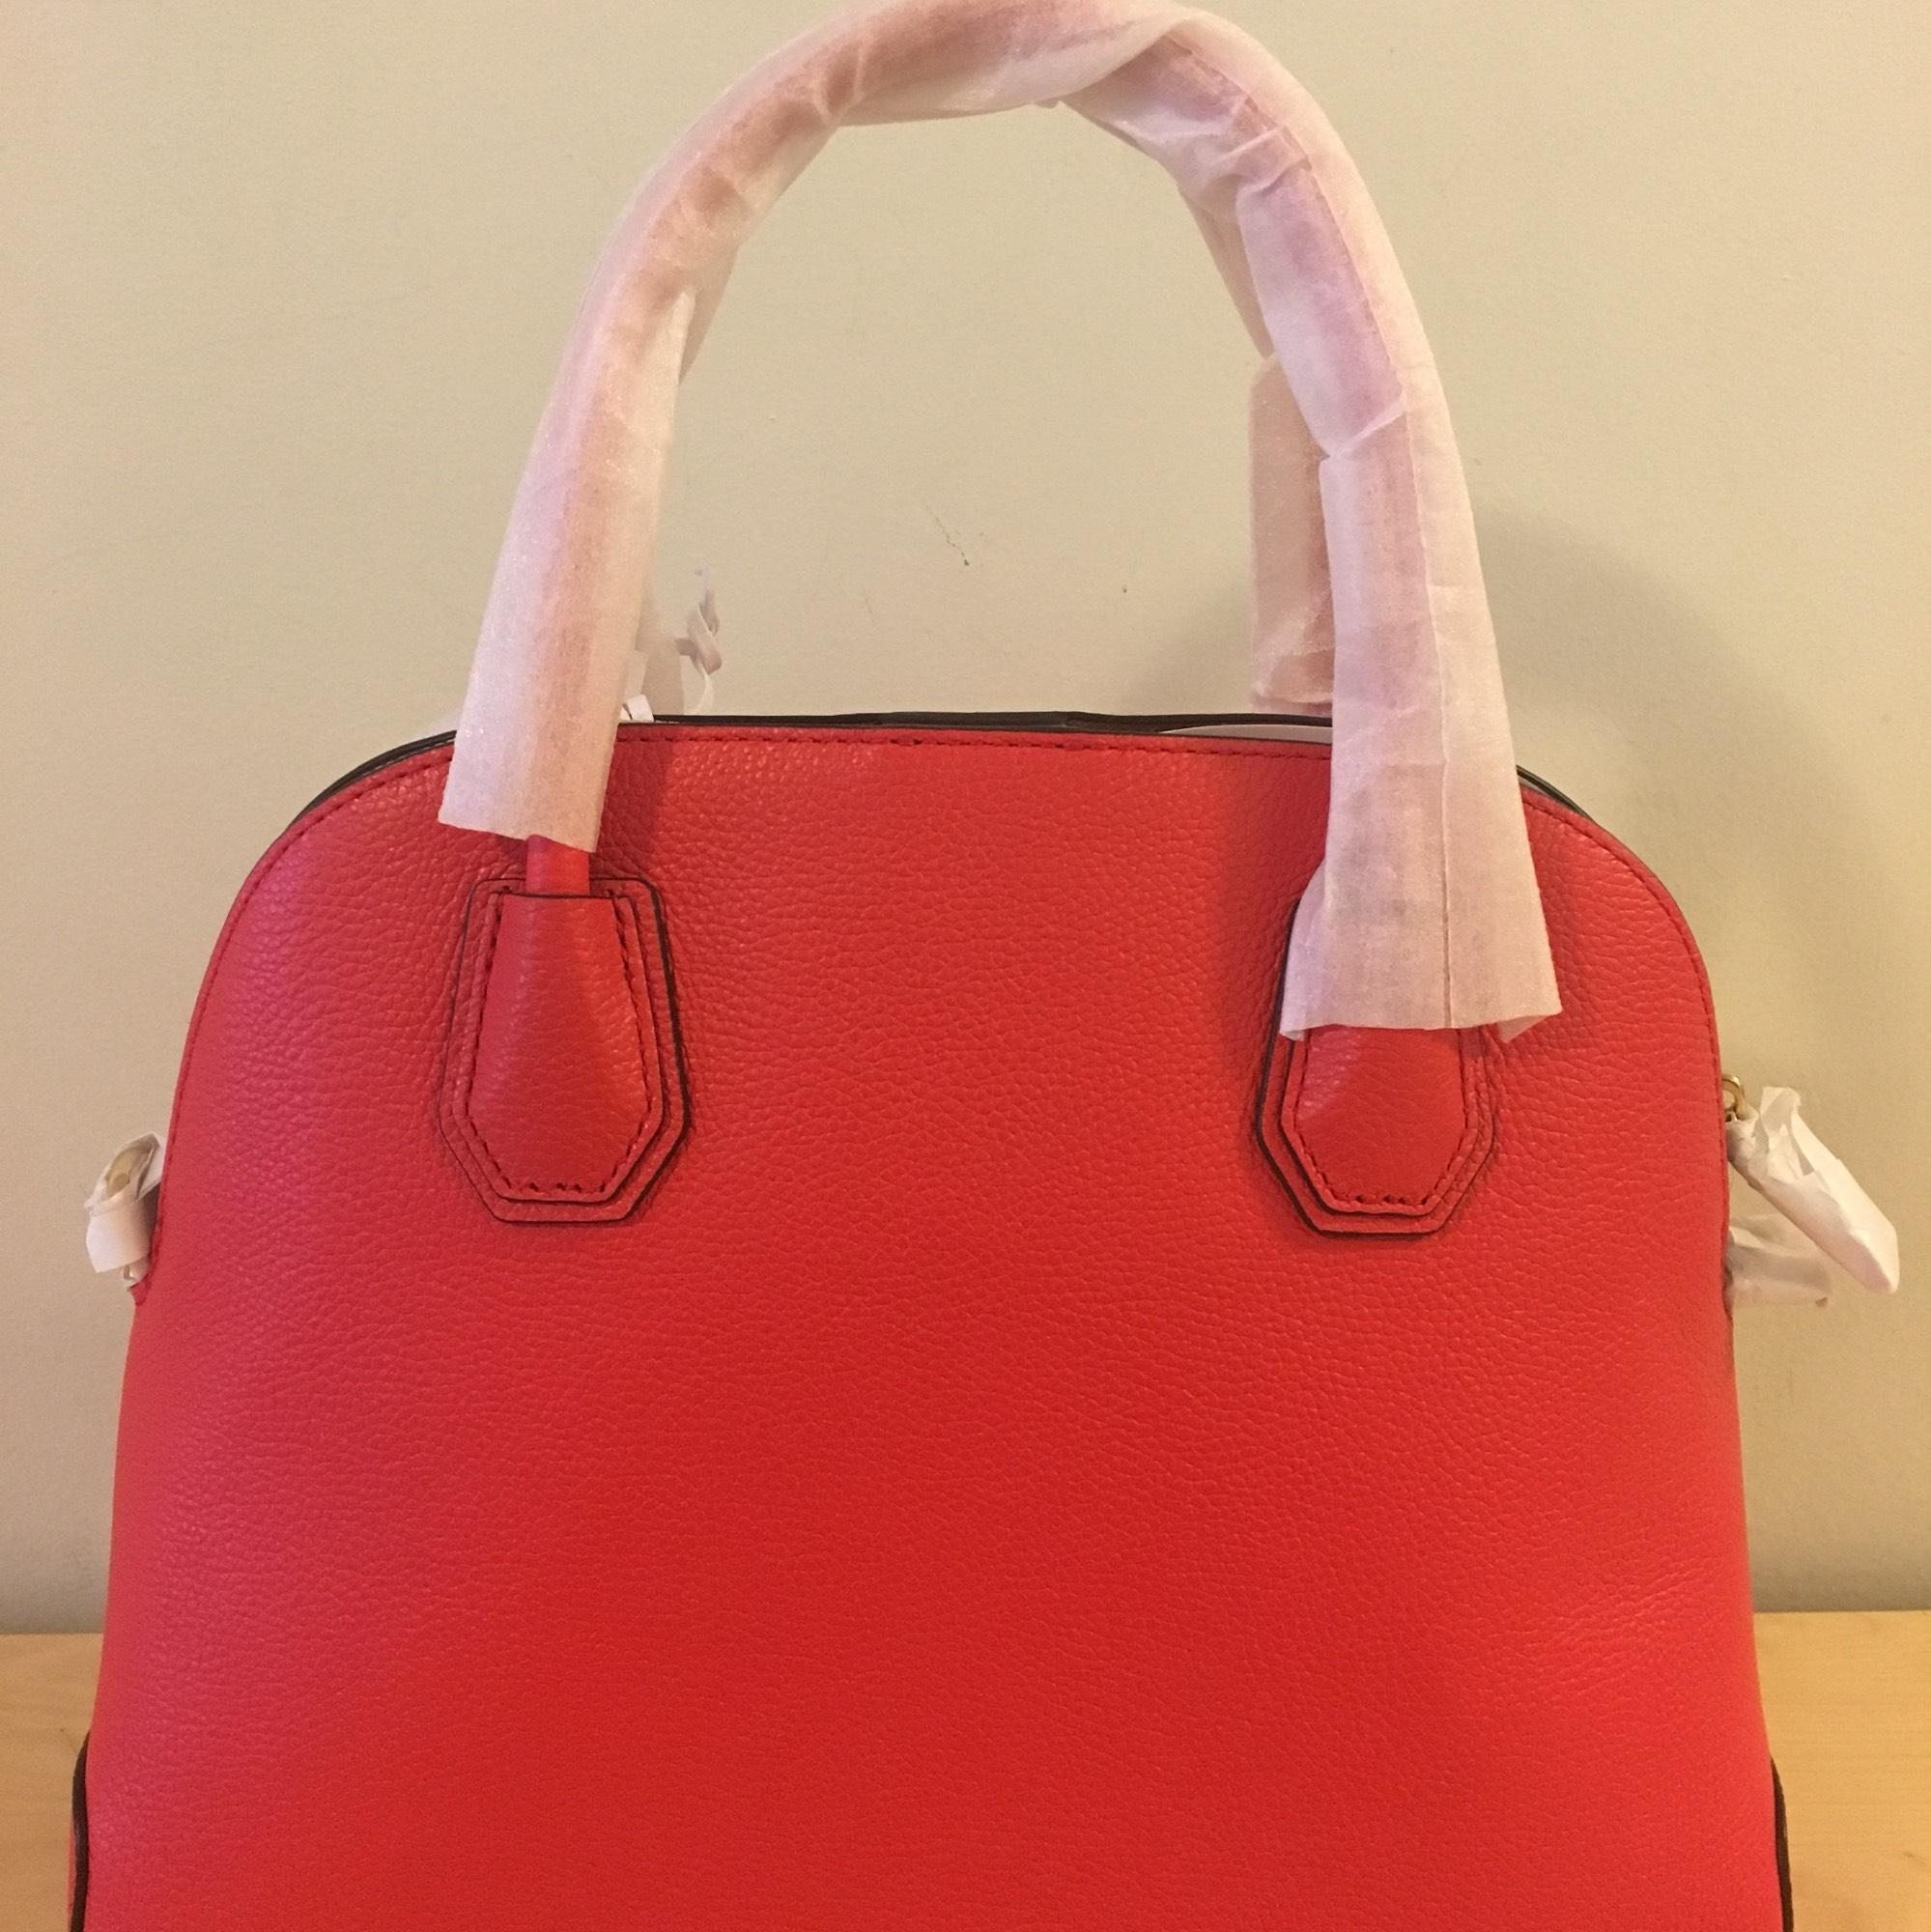 3e778d2f25393c ... bag e3df4 a252e free shipping michael kors mercer large dome satchel  red dk sangria pebbled leather baguette tradesy 755b0 ...